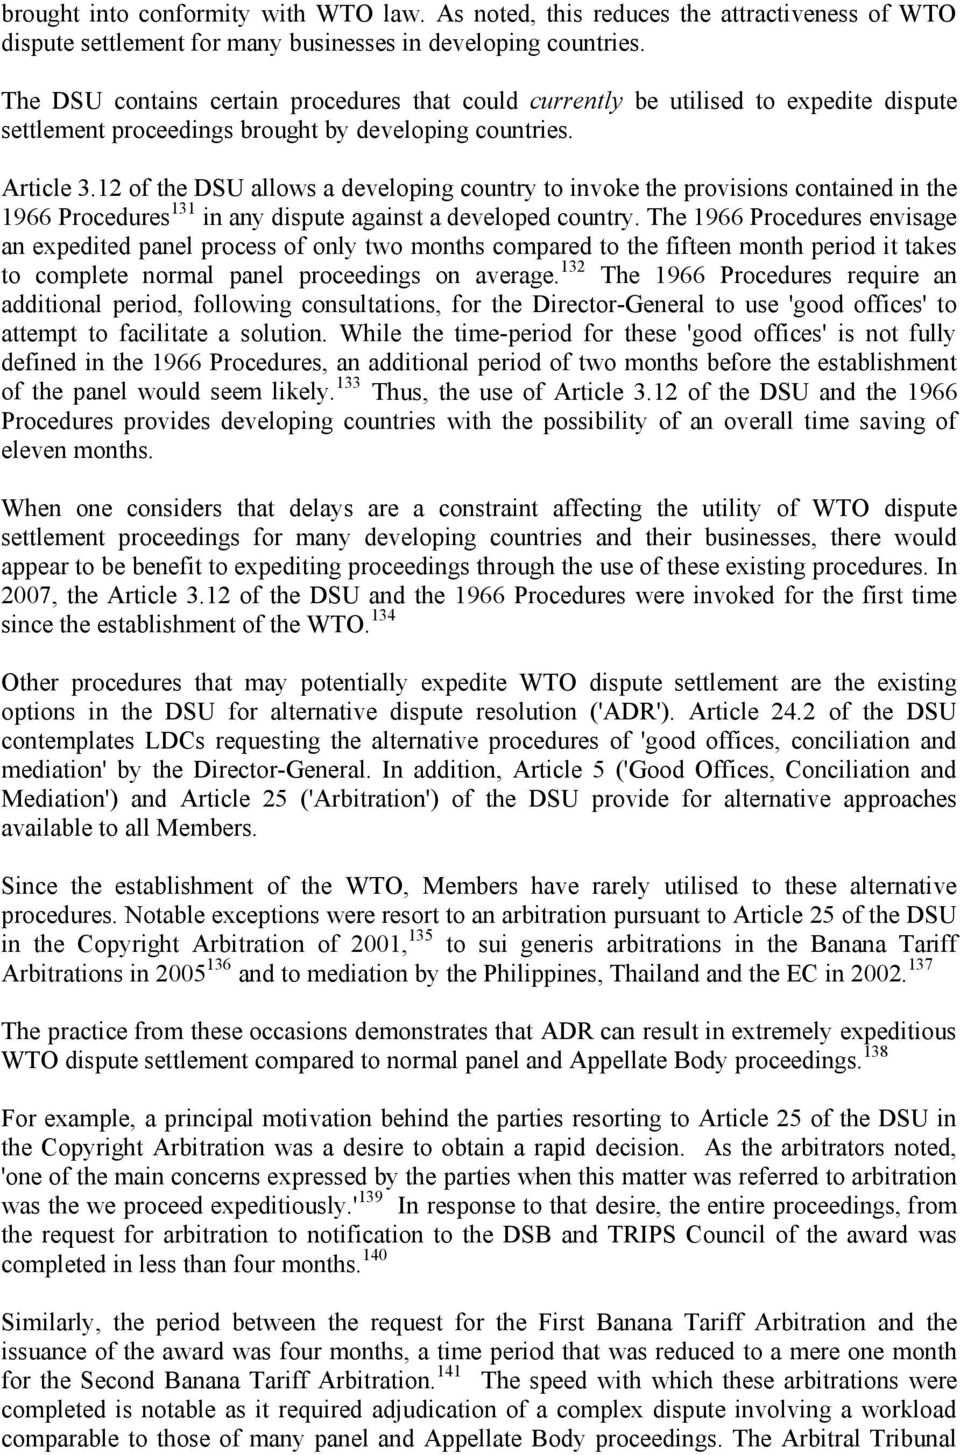 12 of the DSU allows a developing country to invoke the provisions contained in the 1966 Procedures 131 in any dispute against a developed country.